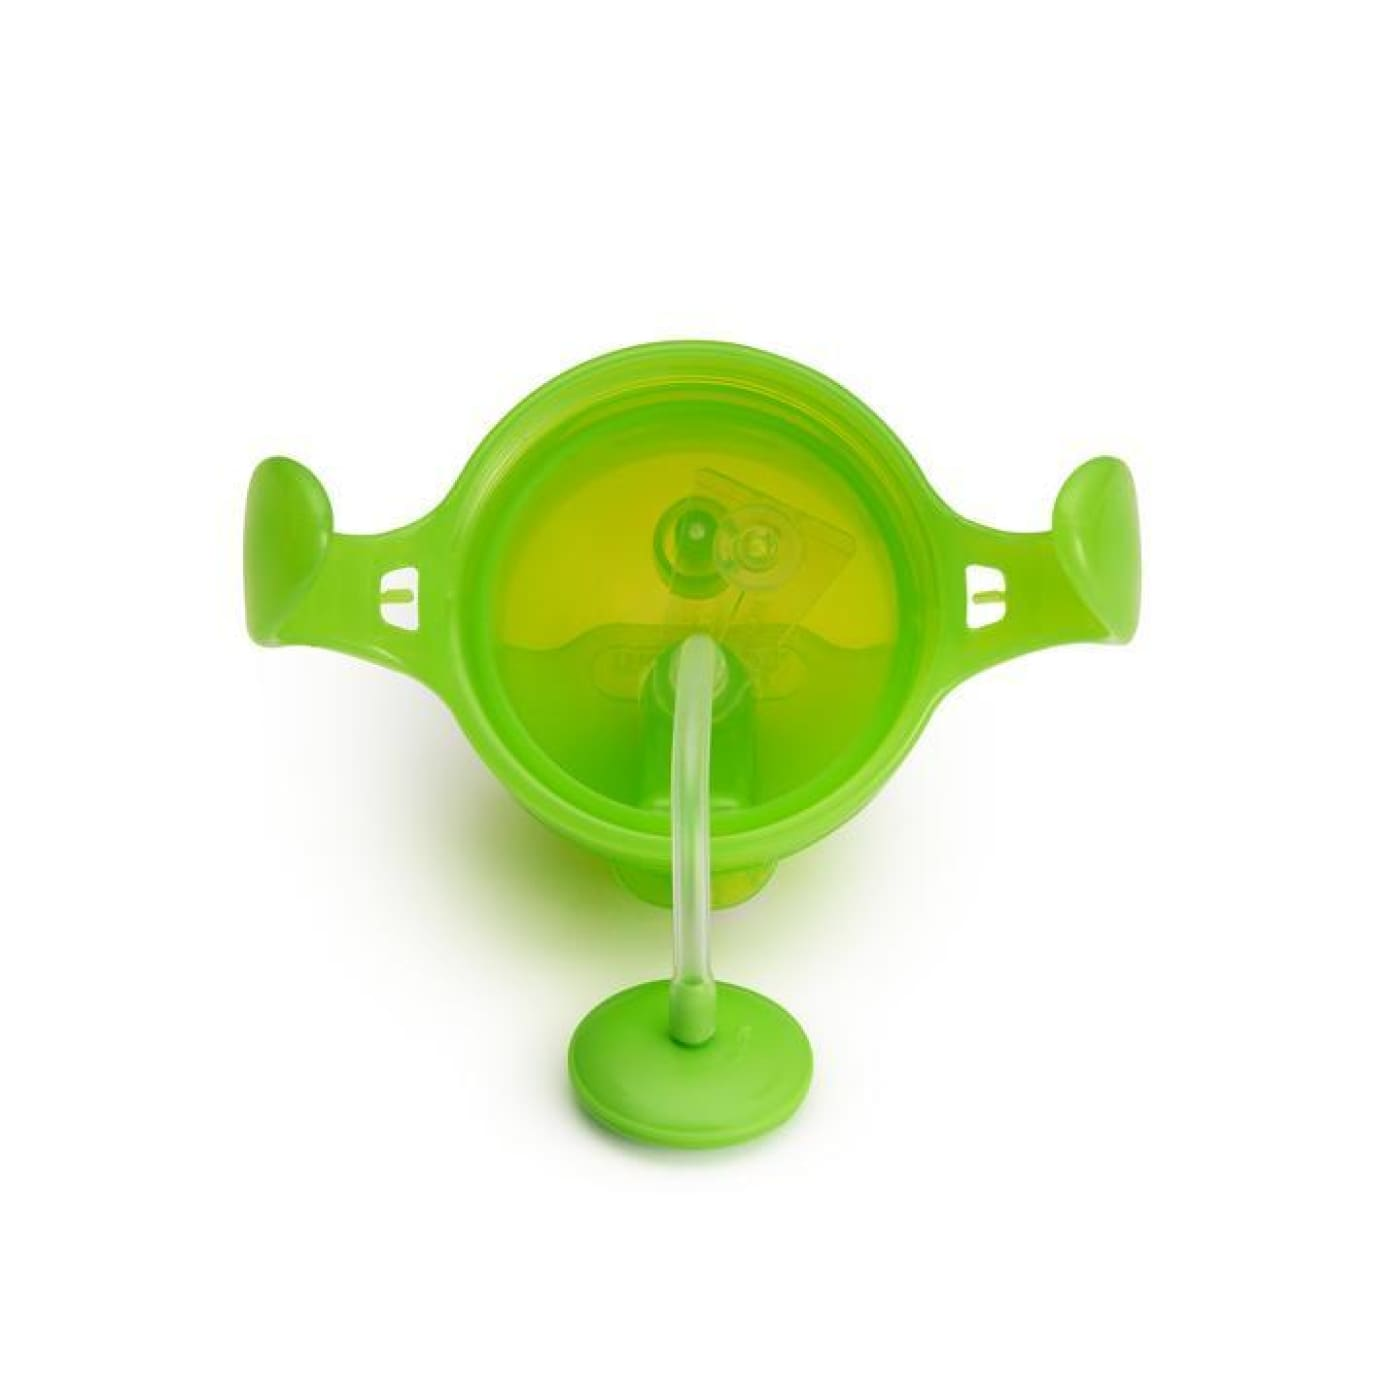 Munchkin Click Lock Weighted Flexi-Straw Cup - Green - NURSING & FEEDING - CUPS/DRINK BOTTLES